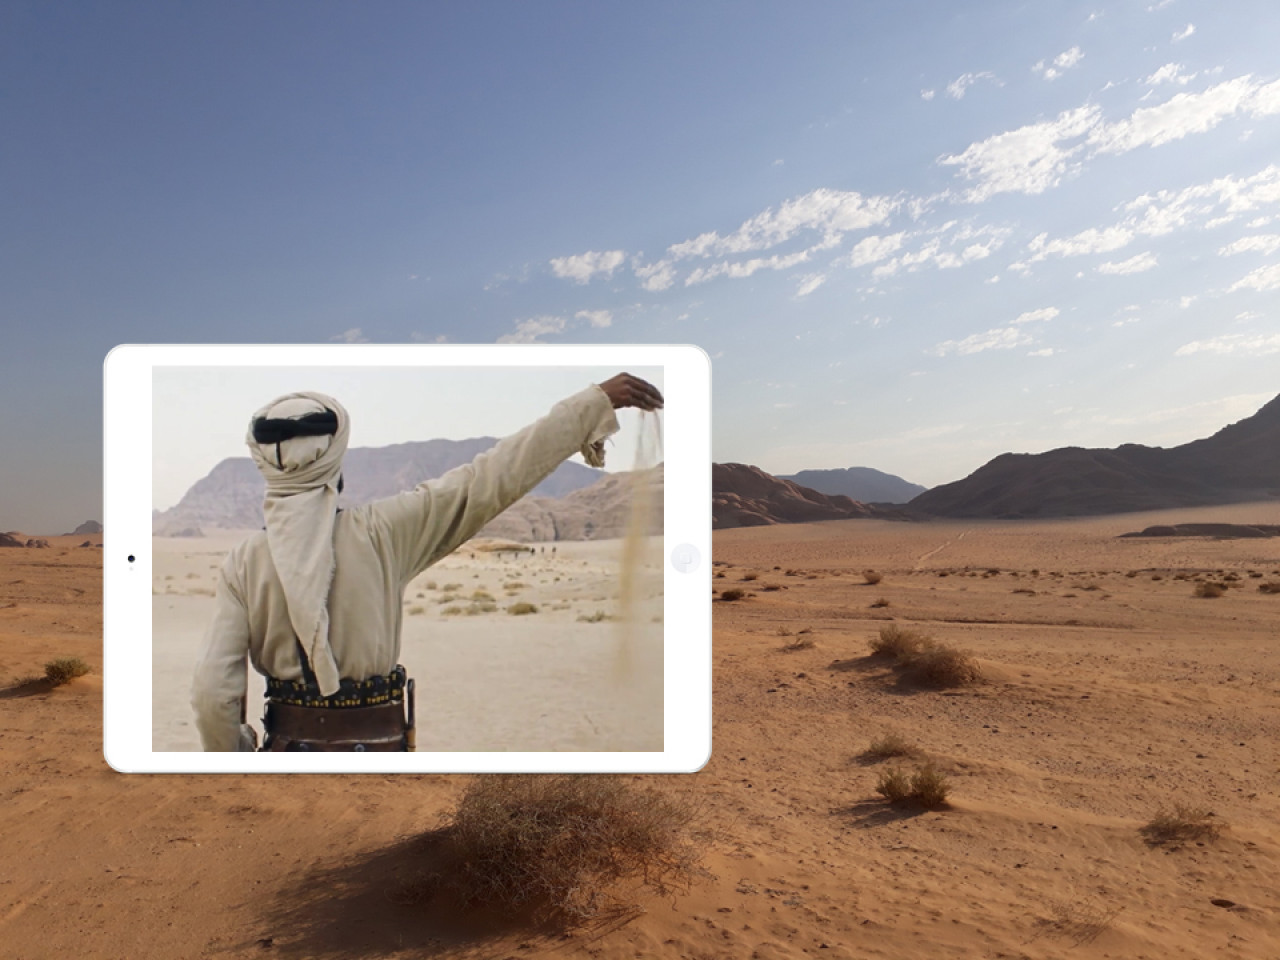 Marji signals the Bedouin warriors in the distance. Are they friend or foe?